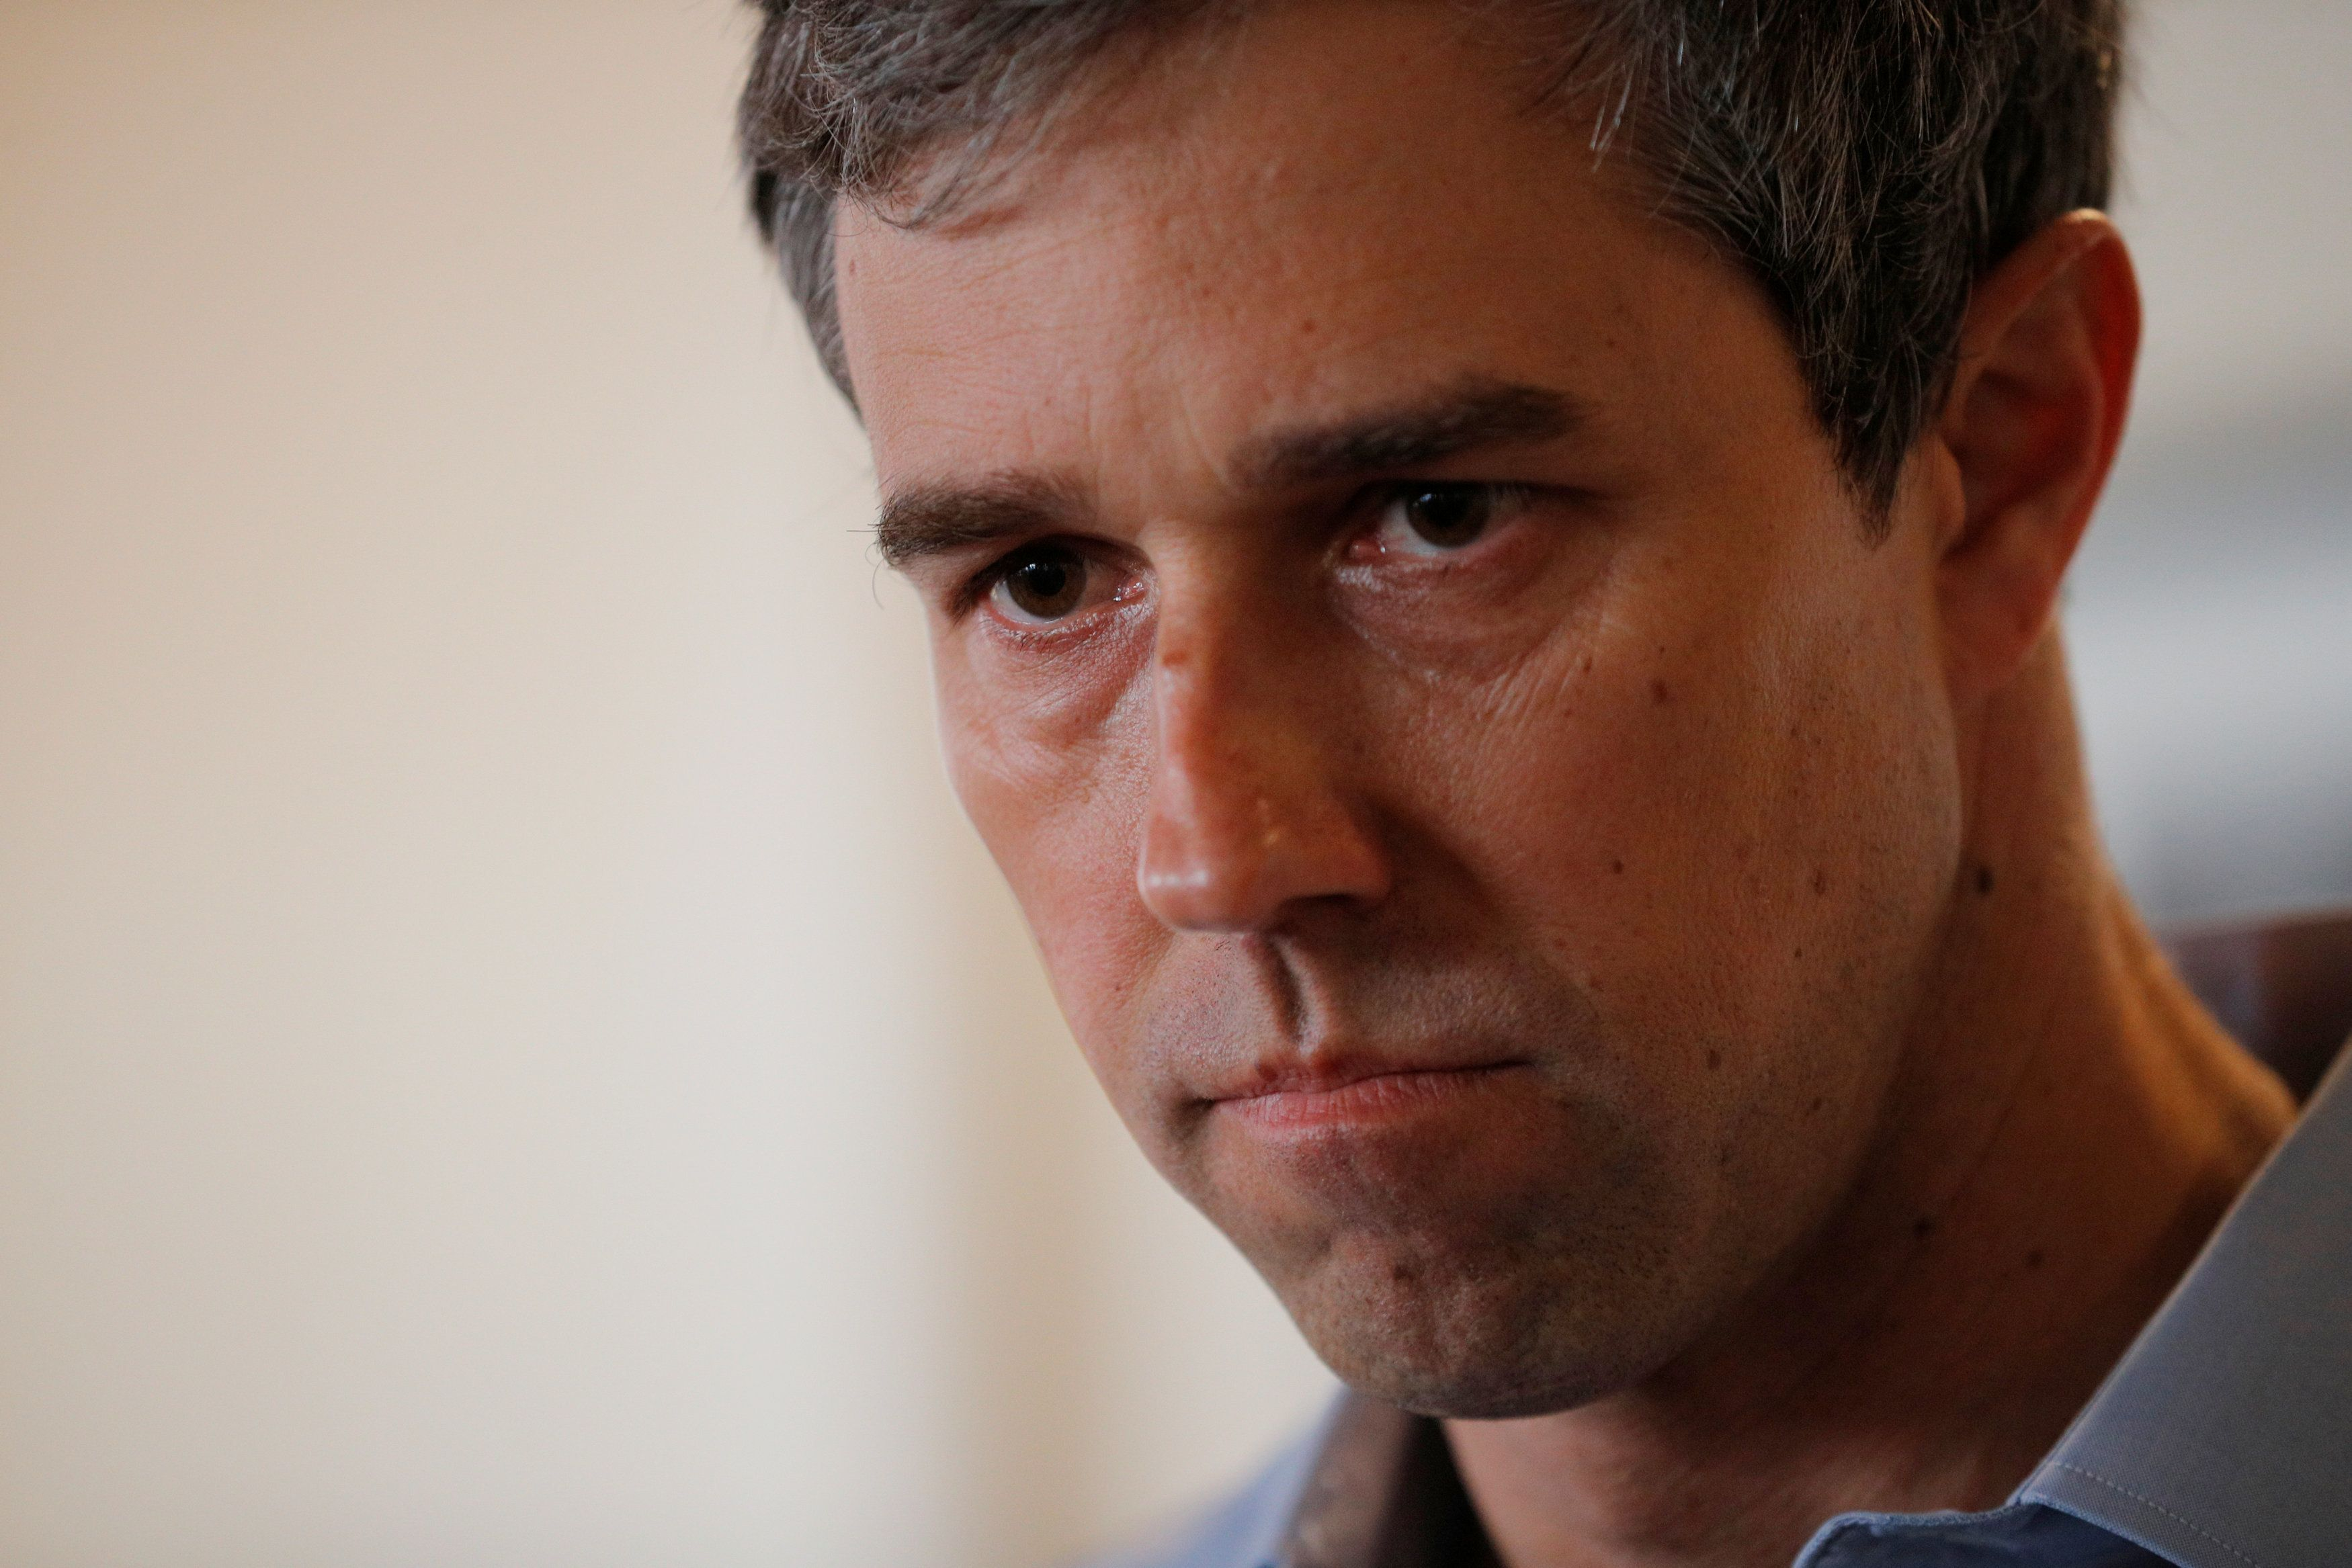 The Curious Link Between Bernie Sanders And Beto O'Rourke